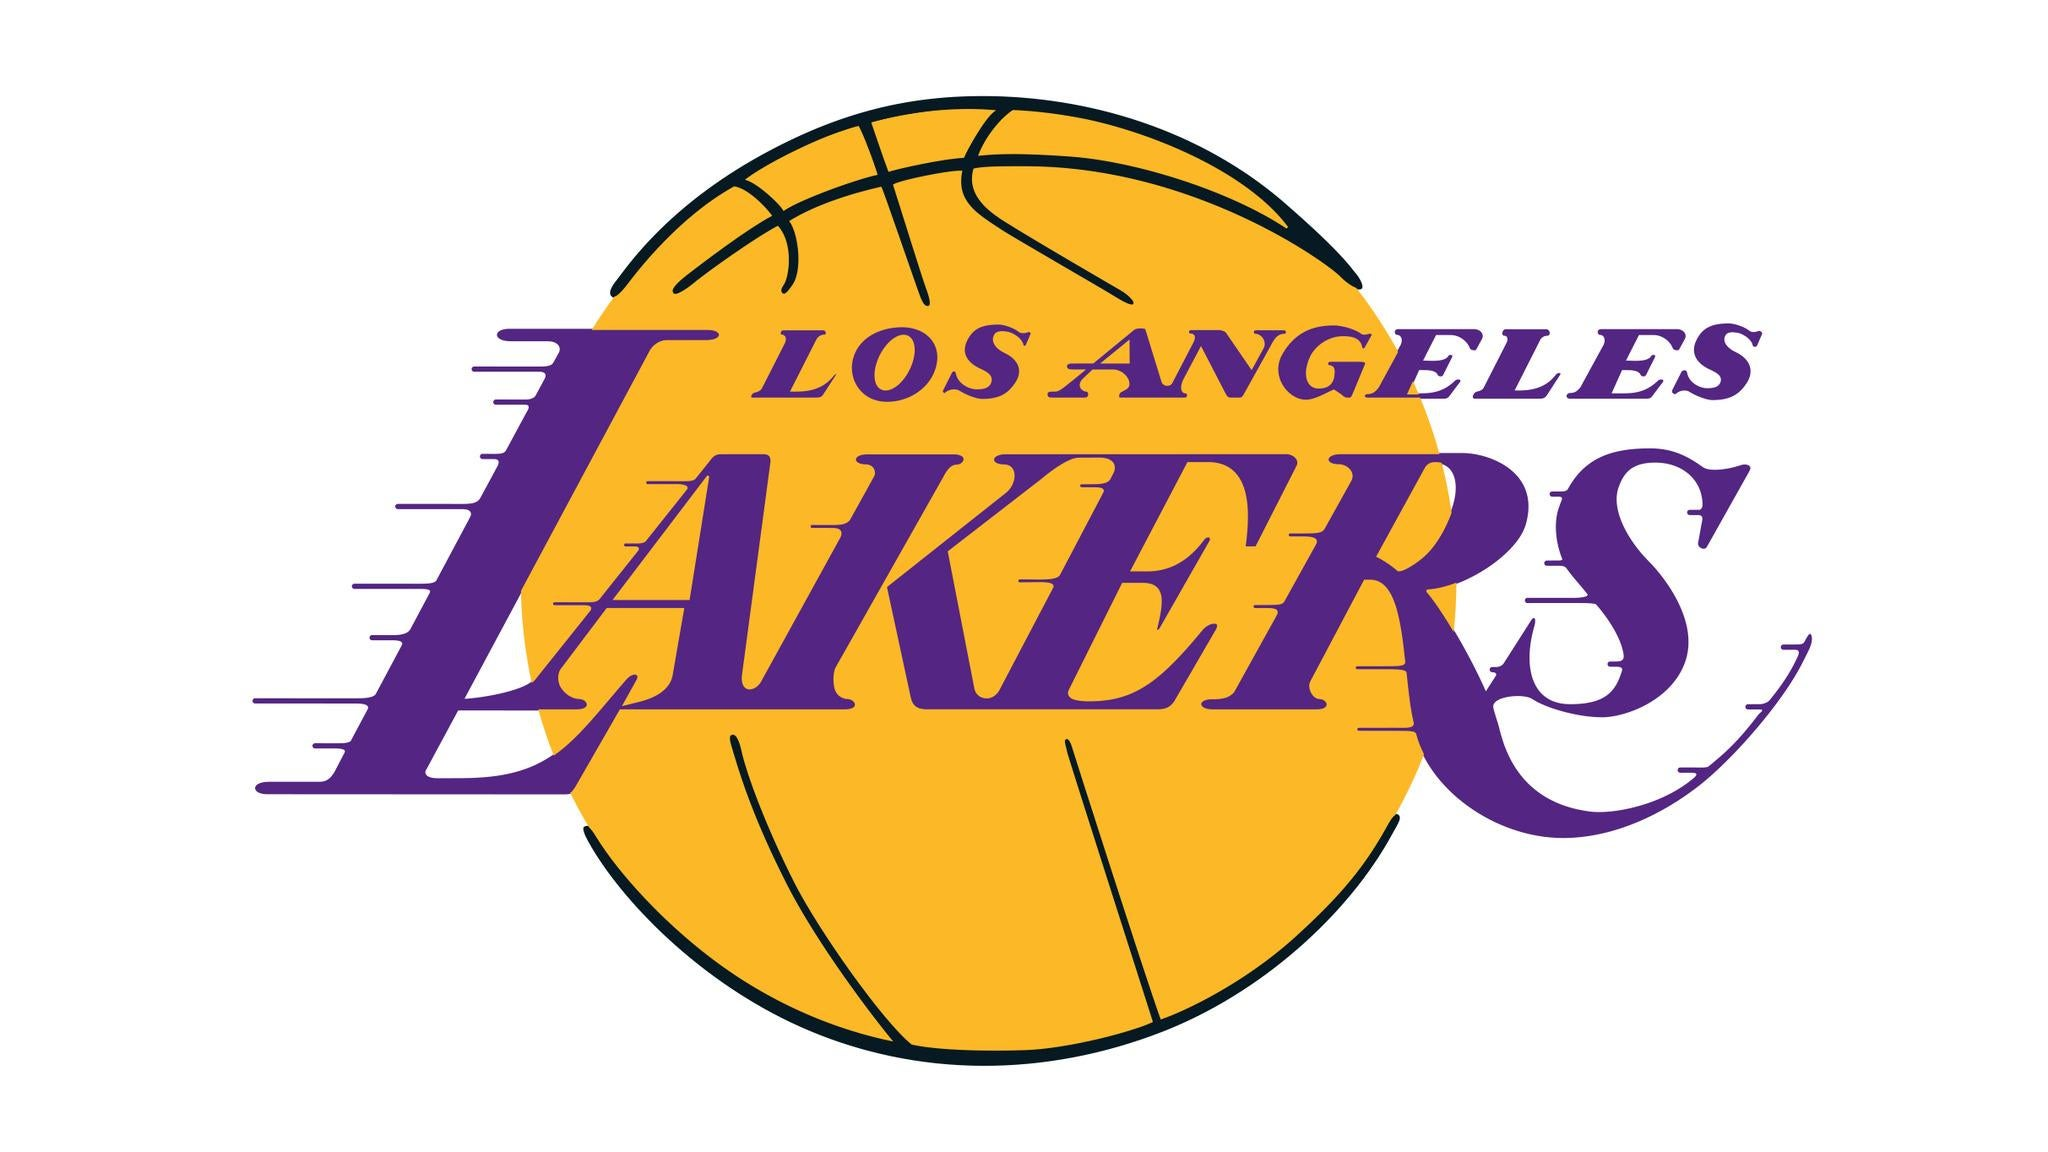 Los Angeles Lakers vs. LA Clippers at STAPLES Center - Los Angeles, CA 90015